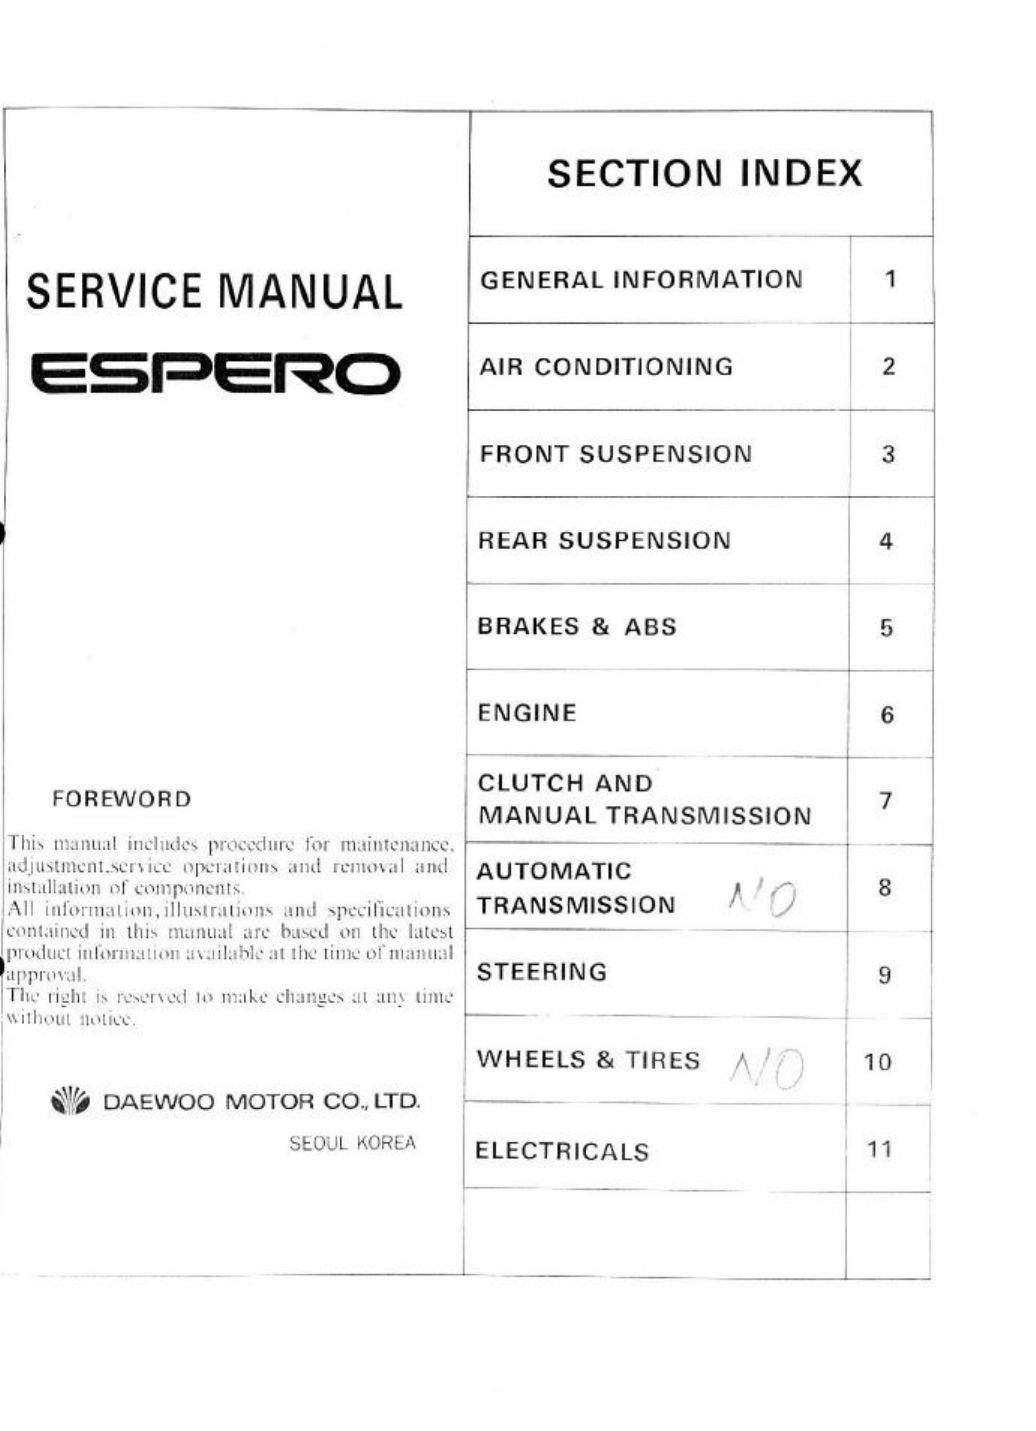 Daewoo espero service & repair manual (1990 1991 1992 1993 1994 199.